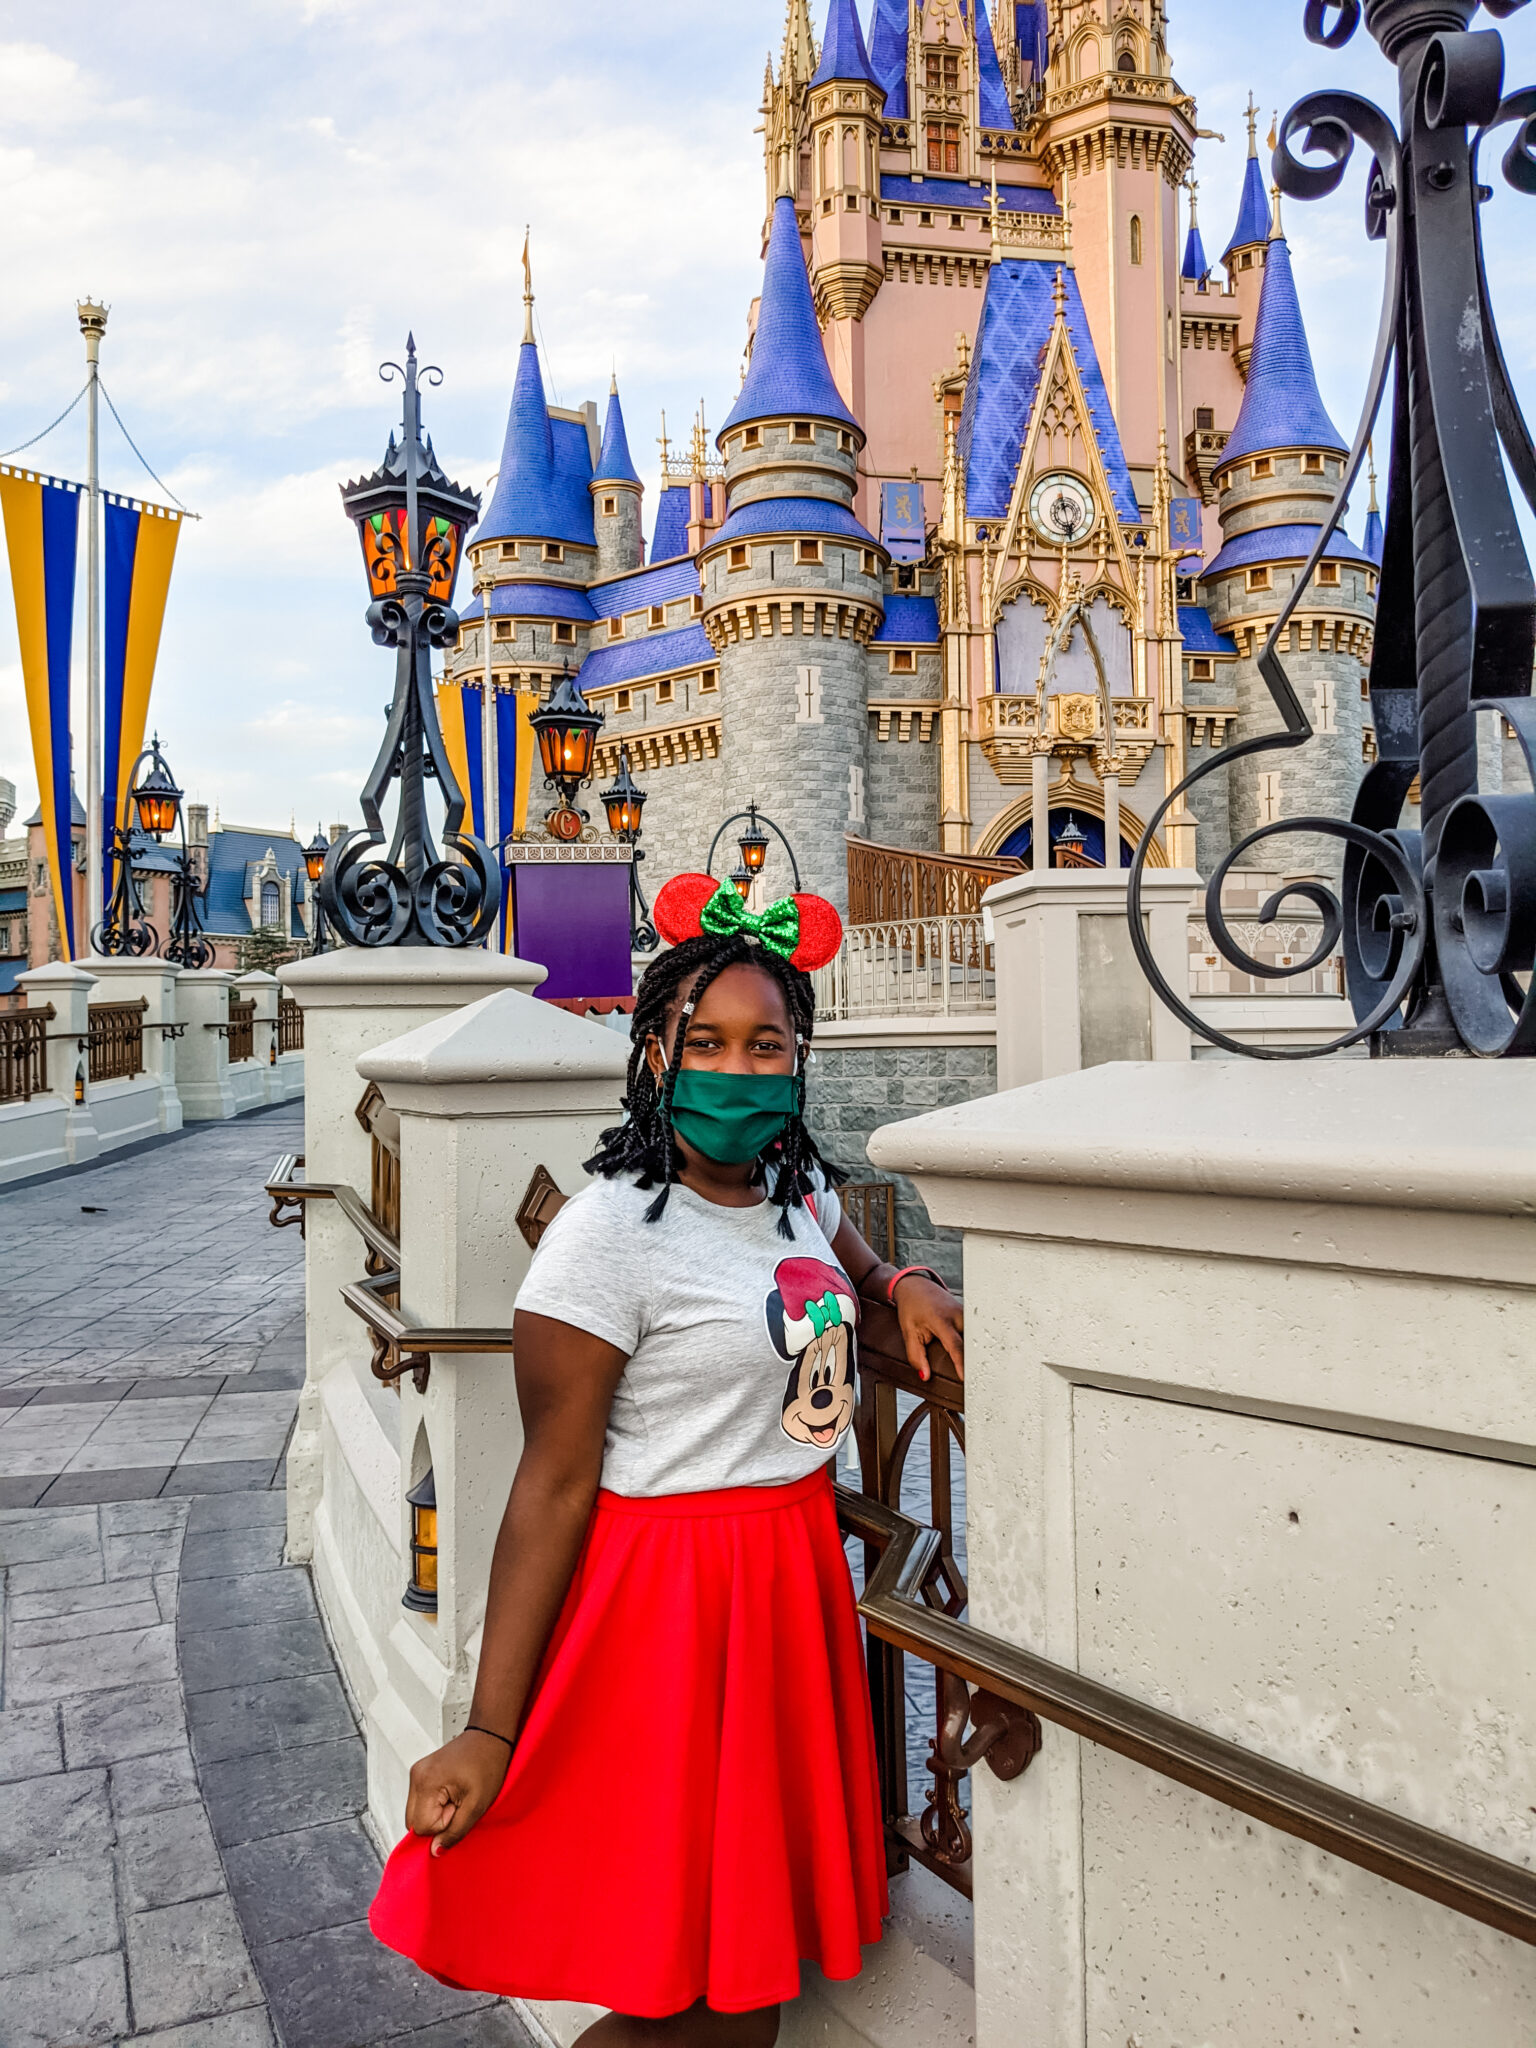 Creative Pictures to Take at Disney World While Wearing a Mask All Things with Purpose Sarah Lemp 5